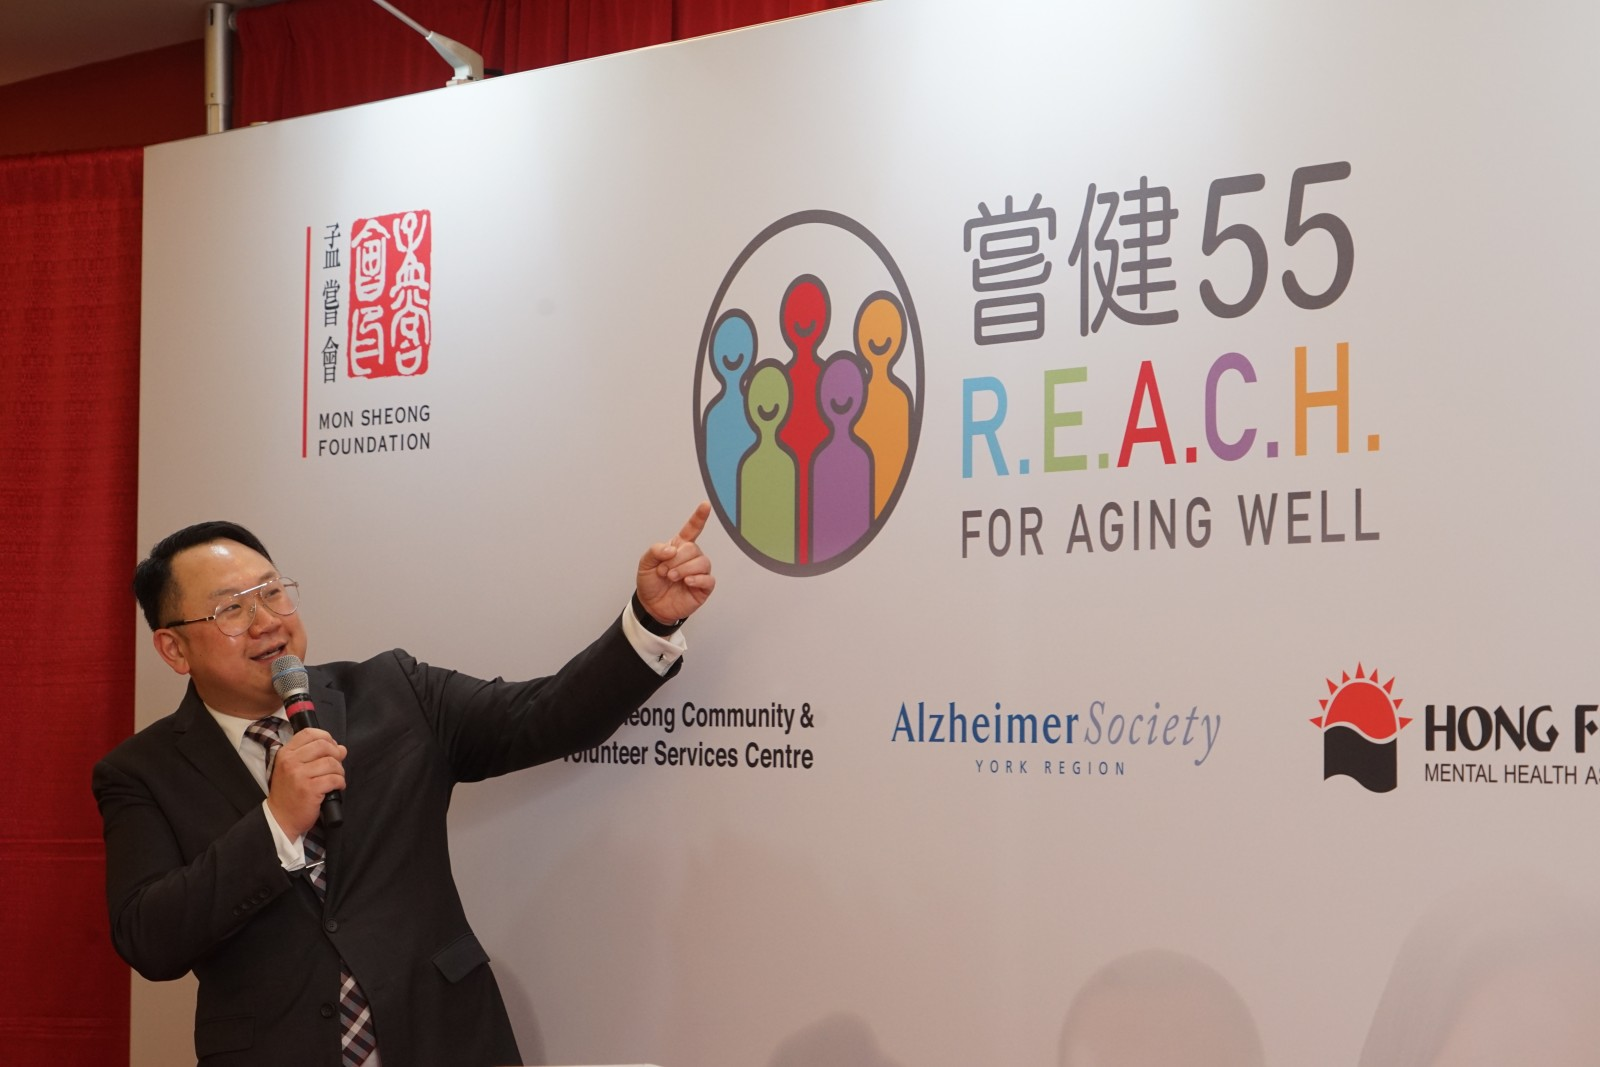 Joseph Tsang Introducing what R.E.A.C.H. stands for